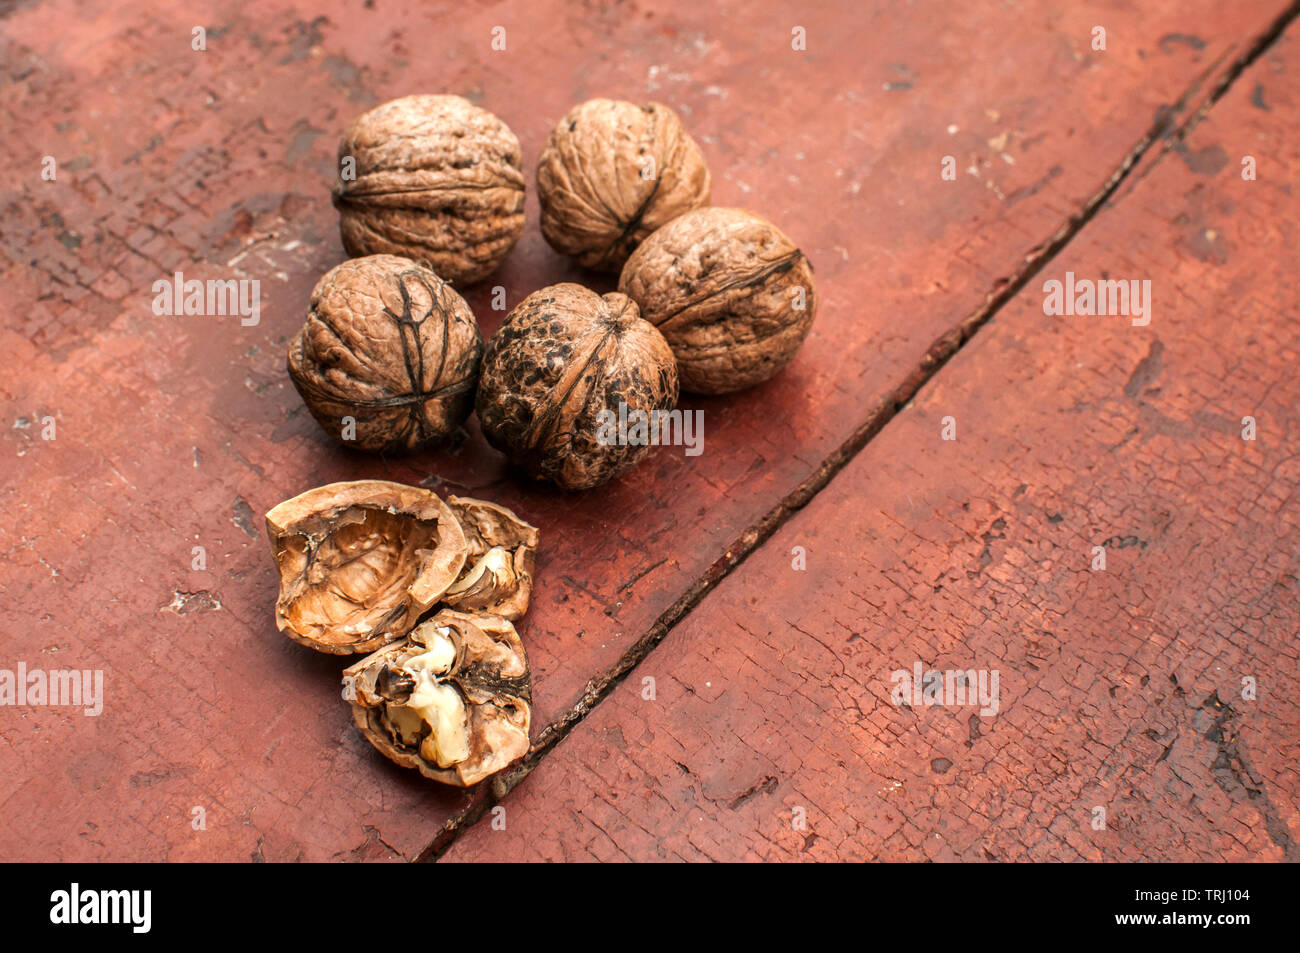 Whole and cracked walnut shells and cores closeup on old wooden boards surface as background - Stock Image